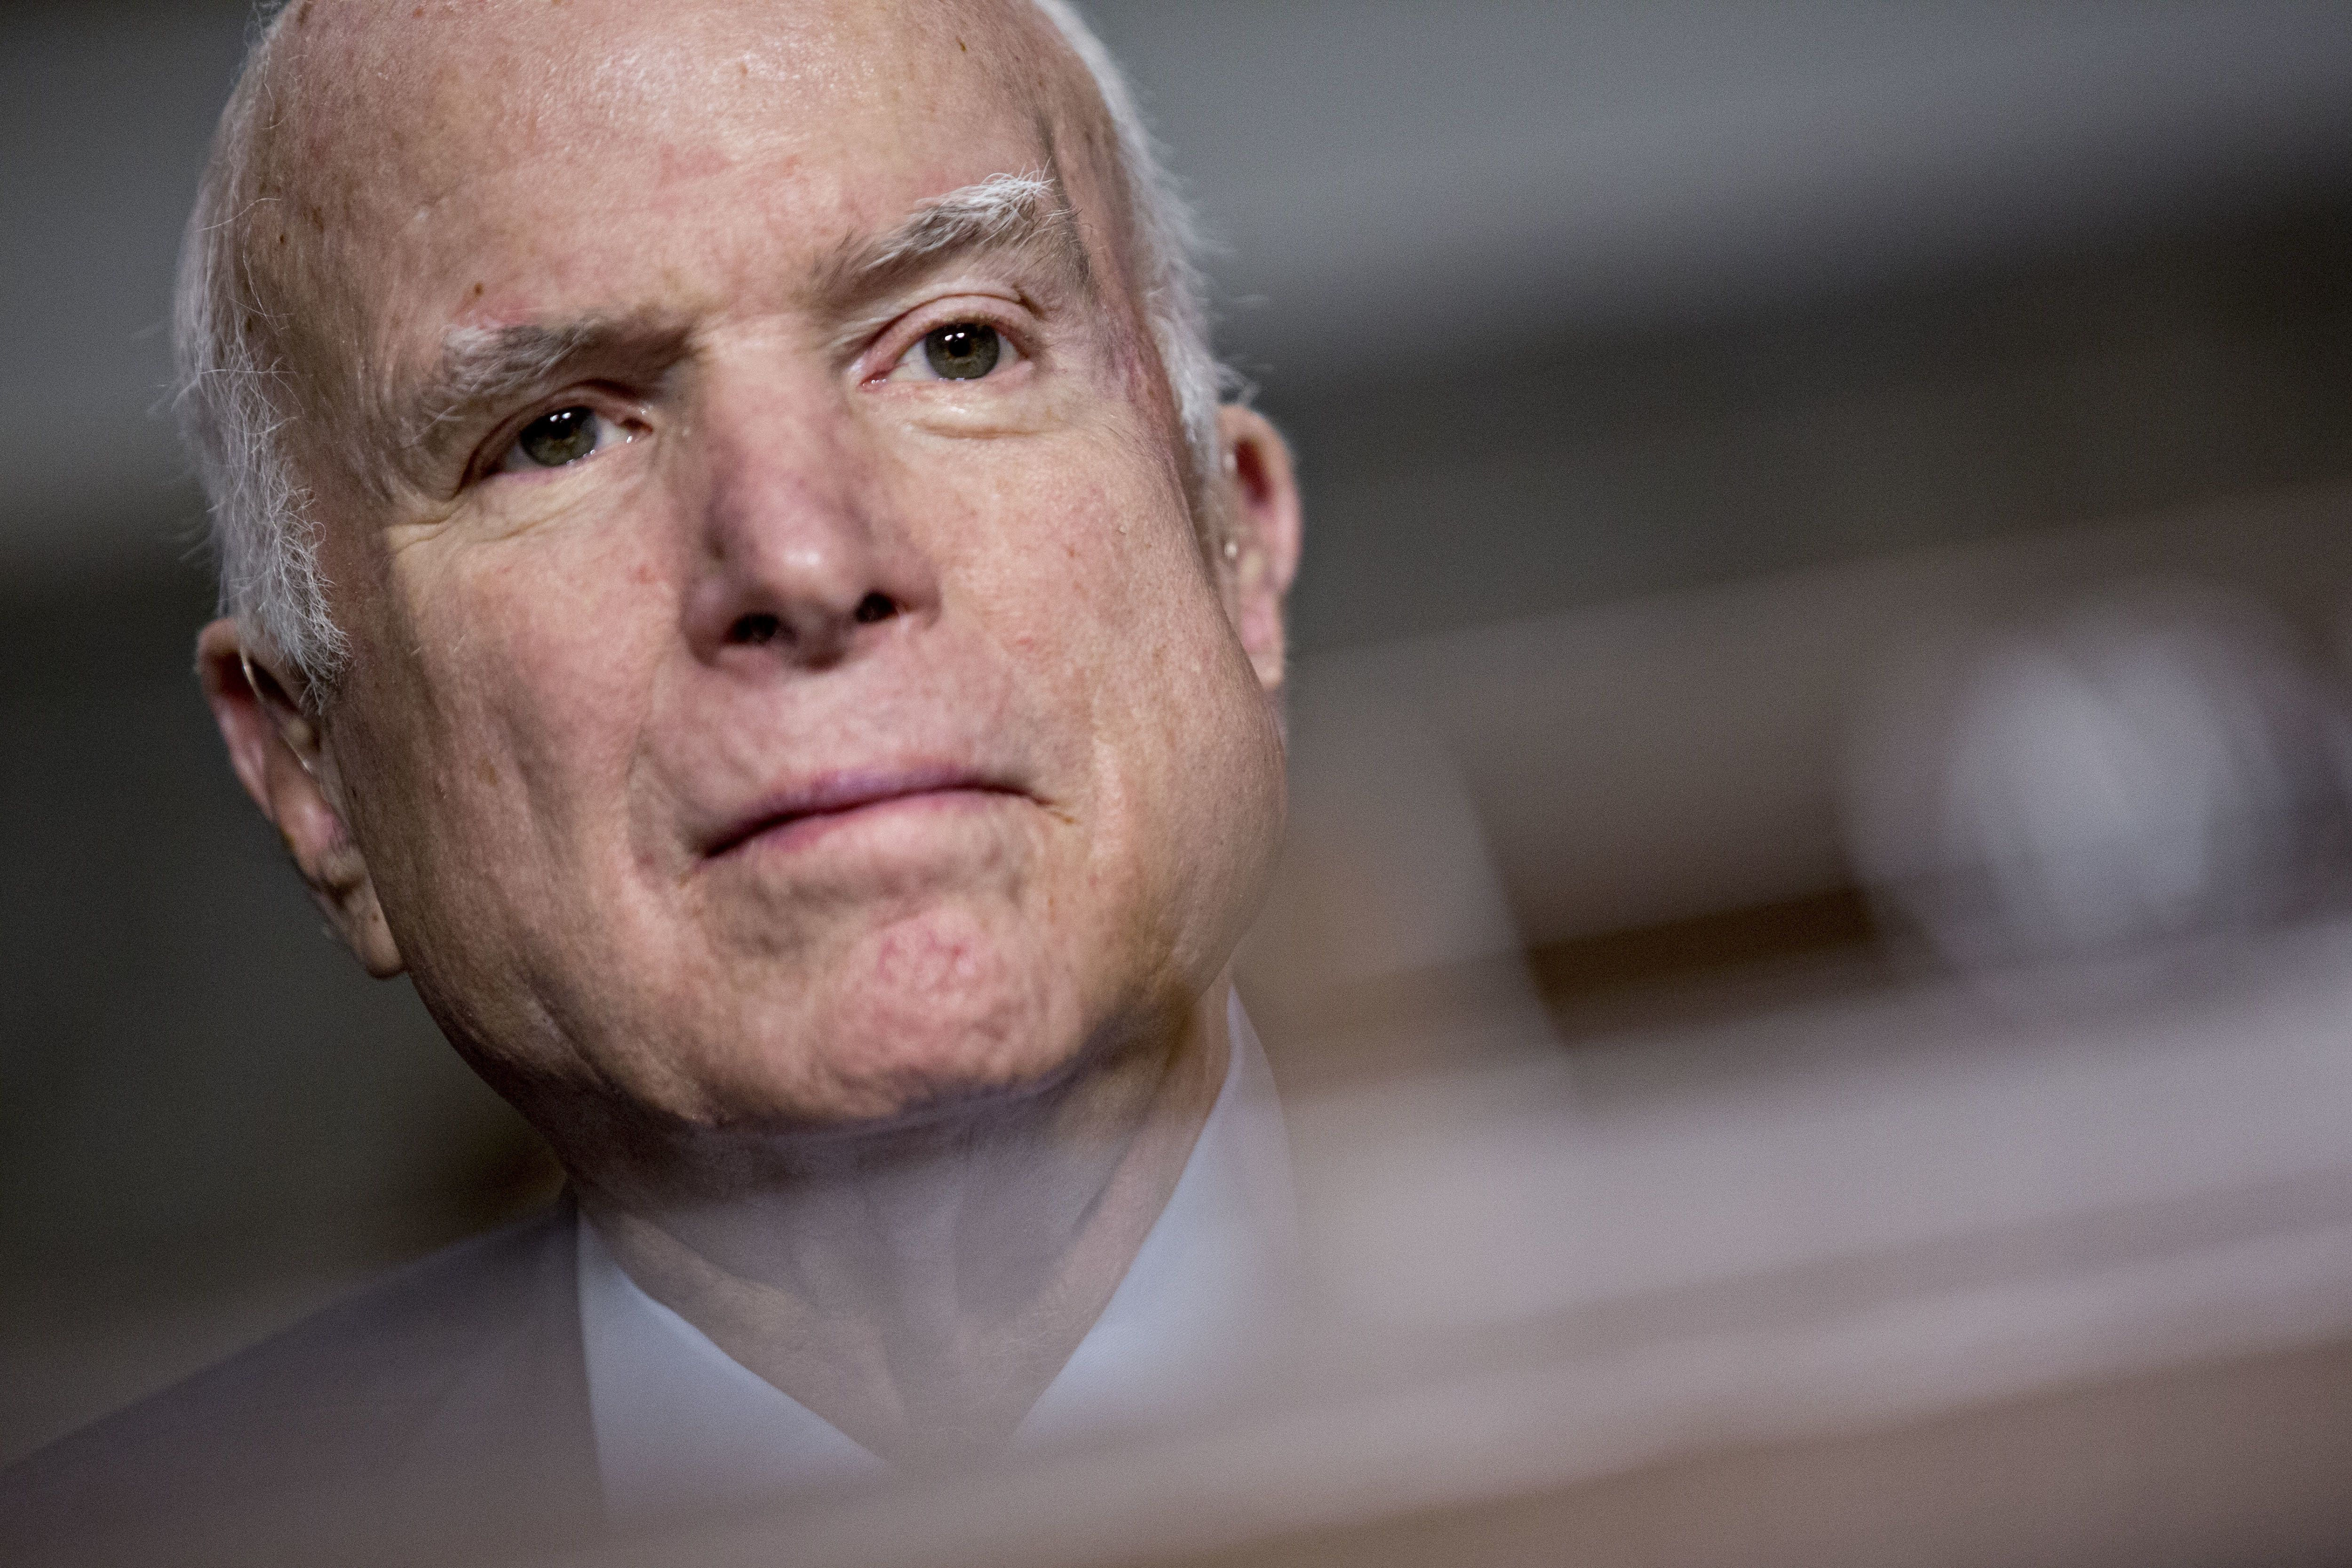 Senator John McCain, a Republican from Arizona and chairman of the Senate Armed Services Committee, listens during a hearing in Washington, D.C., U.S., on Thursday, Nov. 30, 2017. McCain said in a statement Thursday that he's decided to support the Senate tax bill. McCain hadn't taken an official position on the tax plan until now -- and no one was taking his vote for granted after he shocked the political world by voting against a rushed attempt to demolish the Affordable Care Act this summer. Photographer: Andrew Harrer/Bloomberg via Getty Images